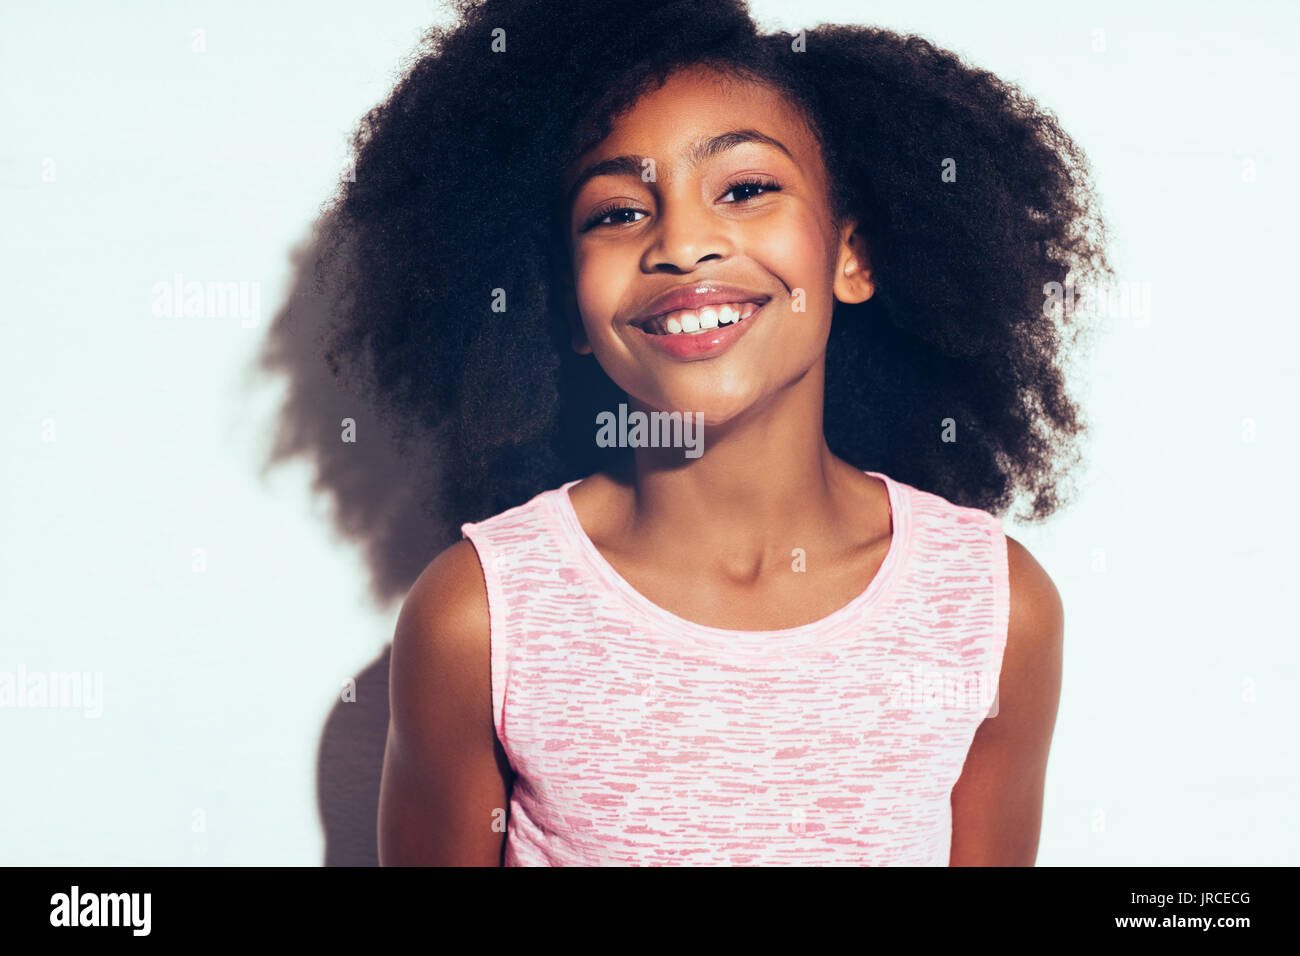 Cute young African girl with long curly hair smiling confidently while standing by herself against a gray background - Stock Image